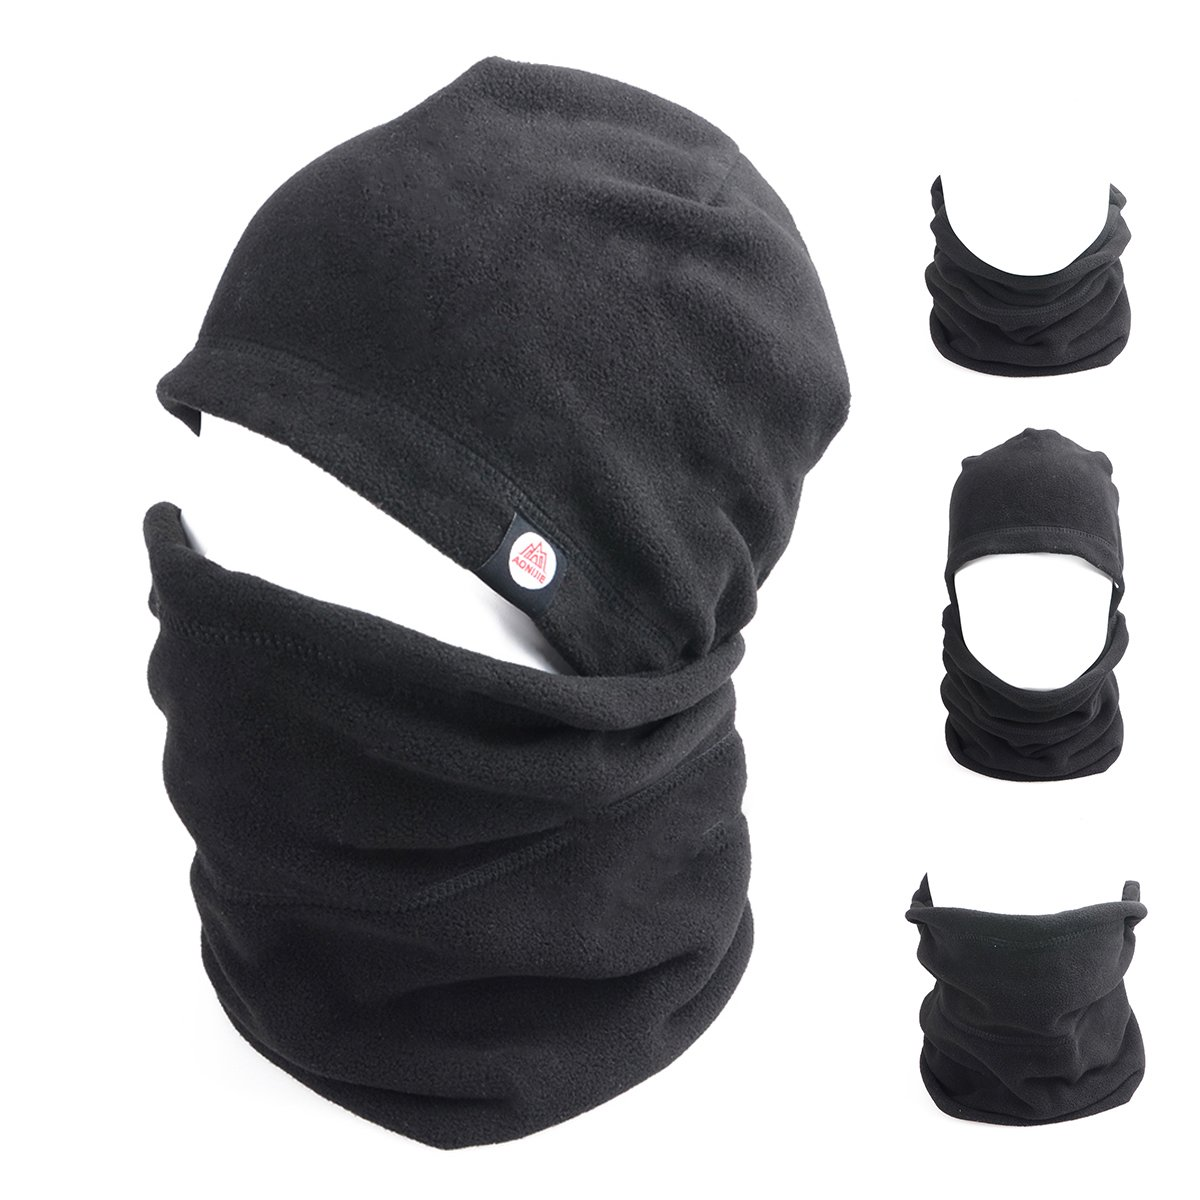 TRIWONDER Balaclava Hood Hat Thermal Fleece Face Mask Neck Warmer Full Face Cover Cap Winter Ski Mask (Black - New Version)